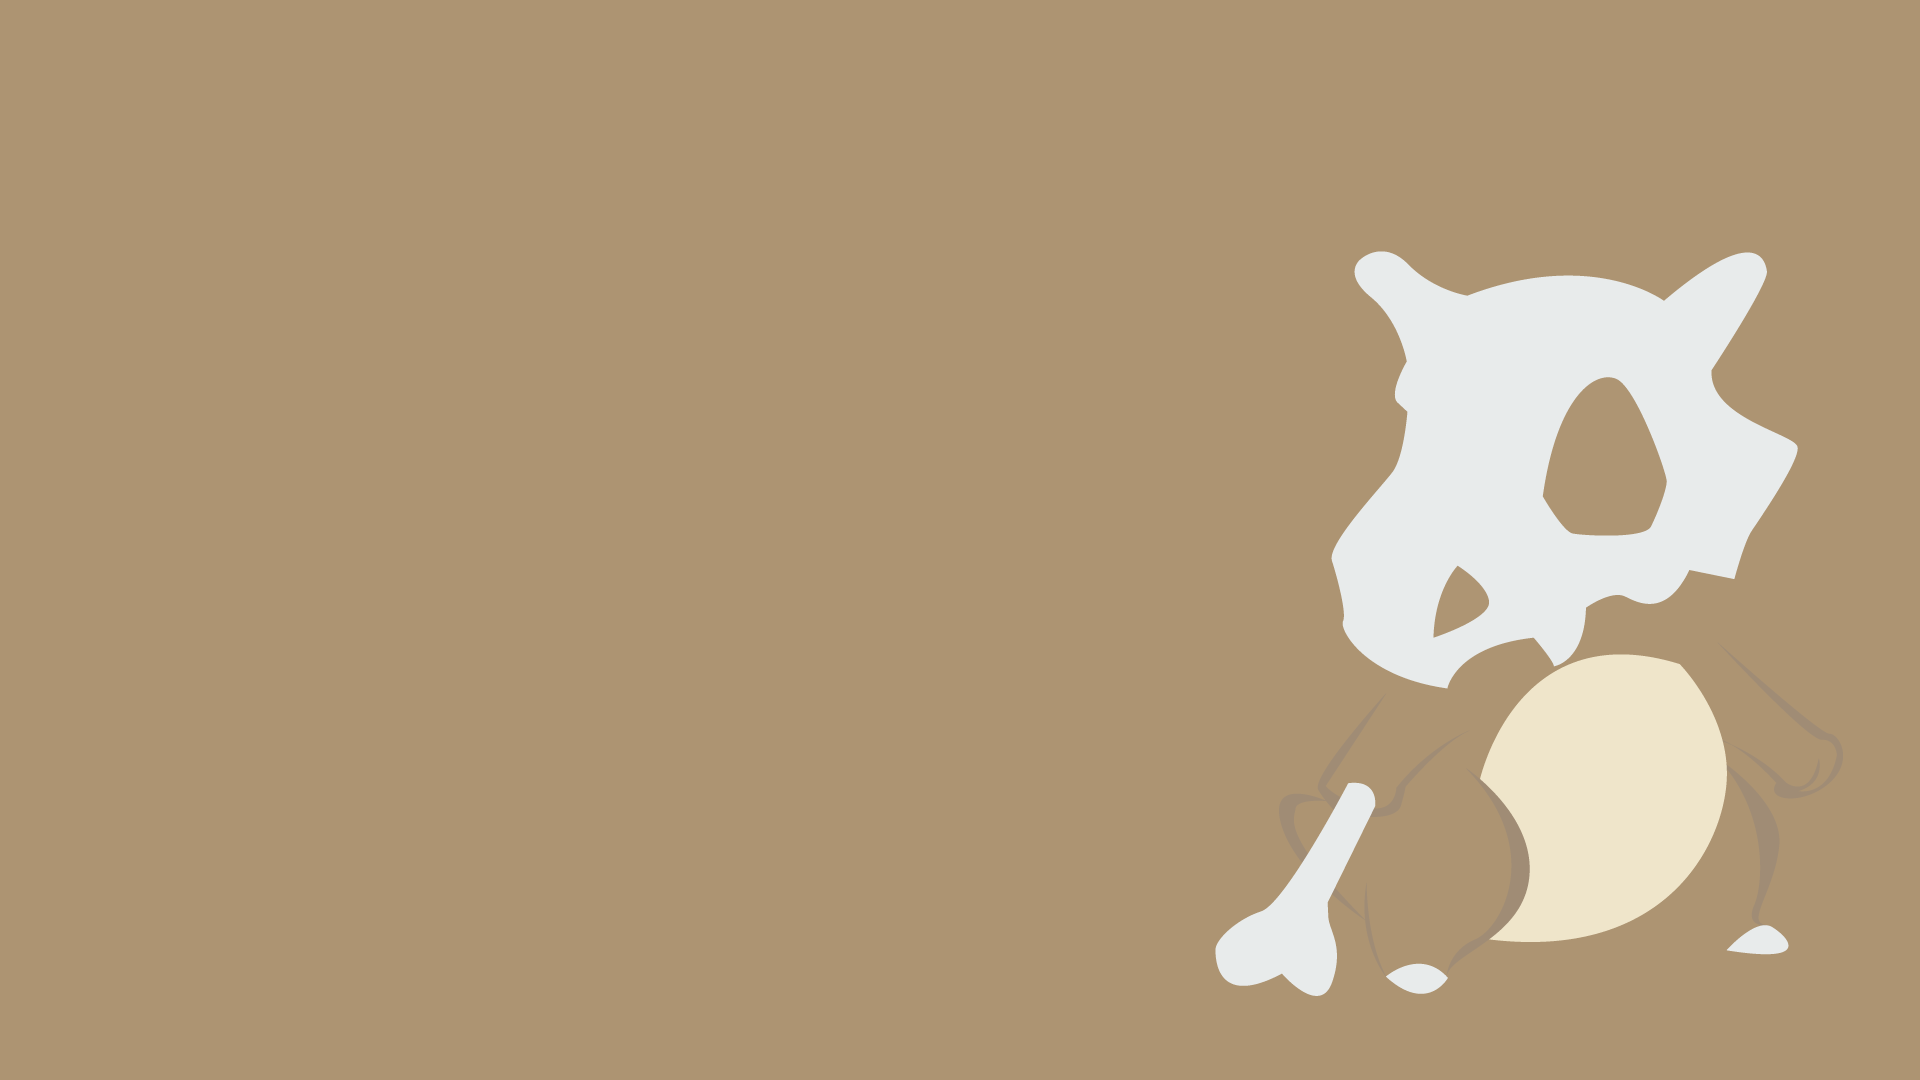 Games wallpaper gaming pokemon cubone - BC-GB